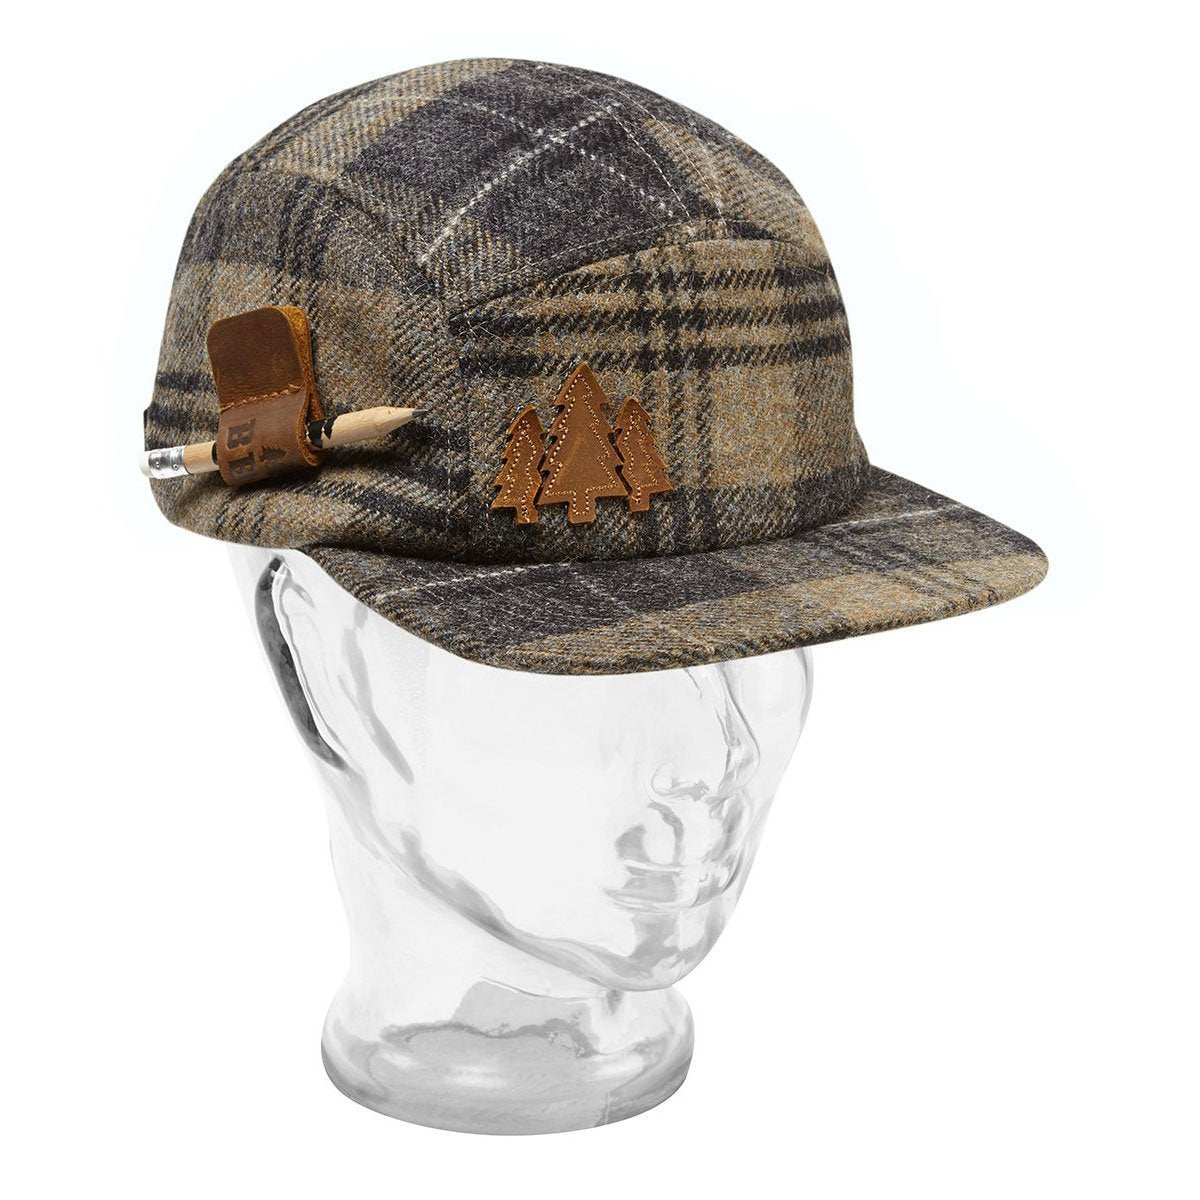 Holster Tweed Wool Cap